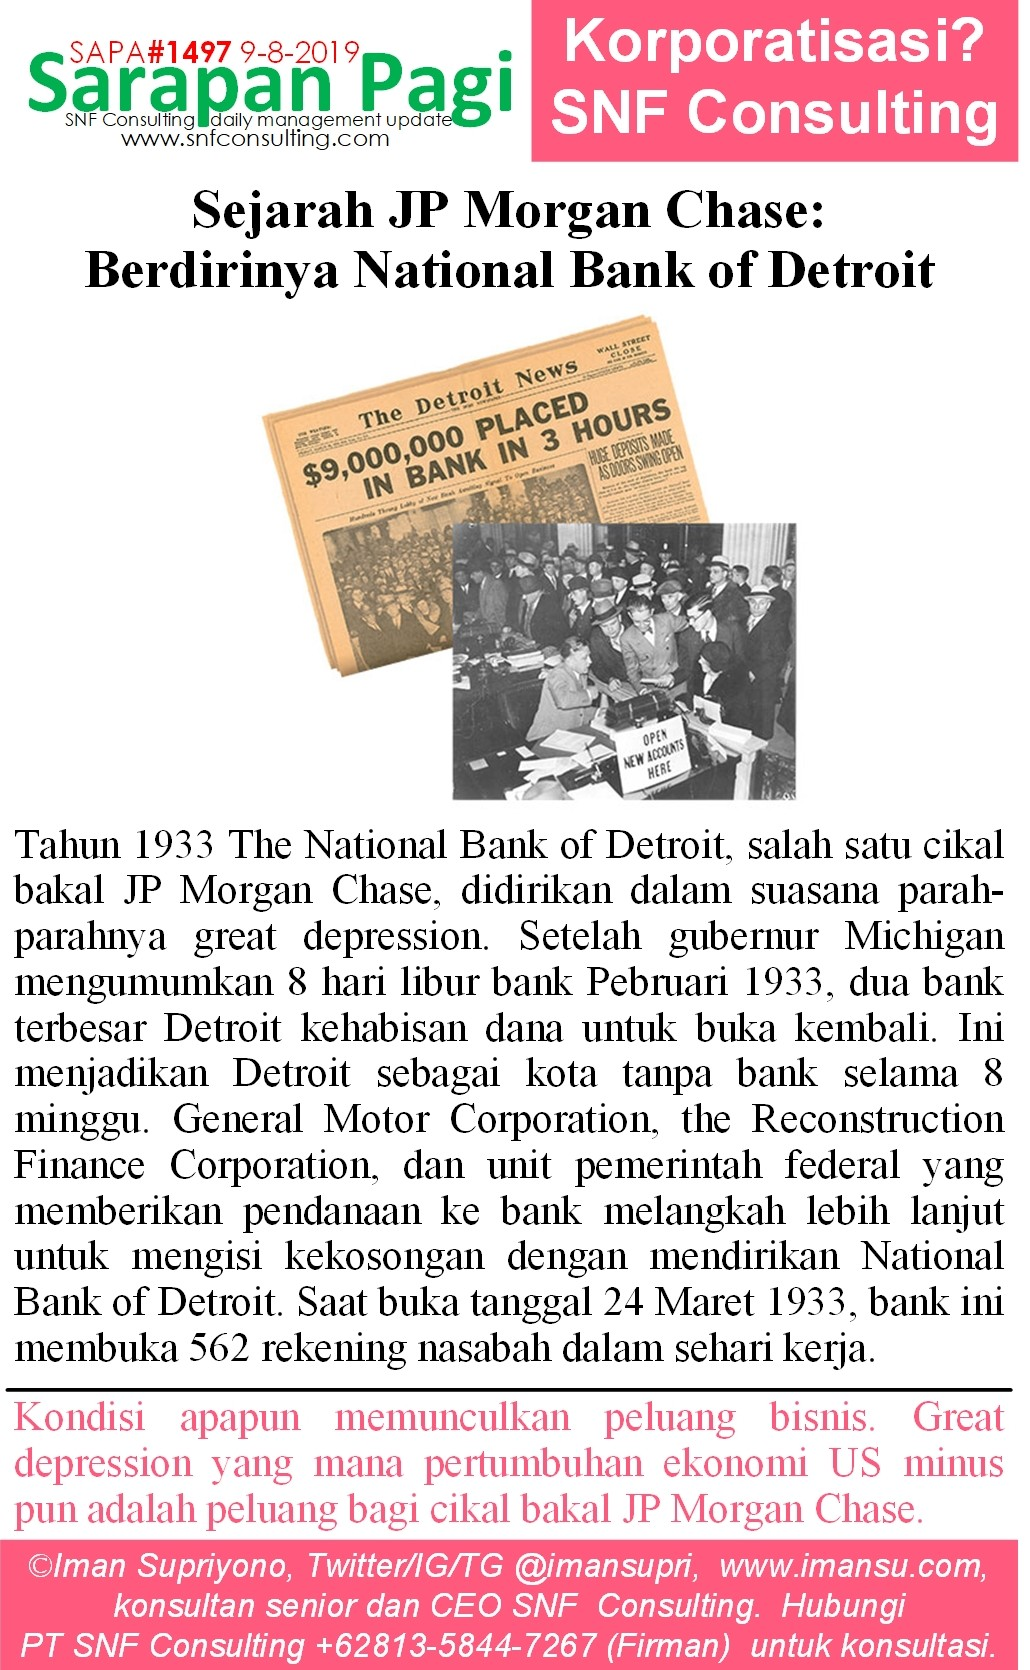 SAPA1497 Sejarah JP Morgan Chase berdirinya National bank of detroit~2